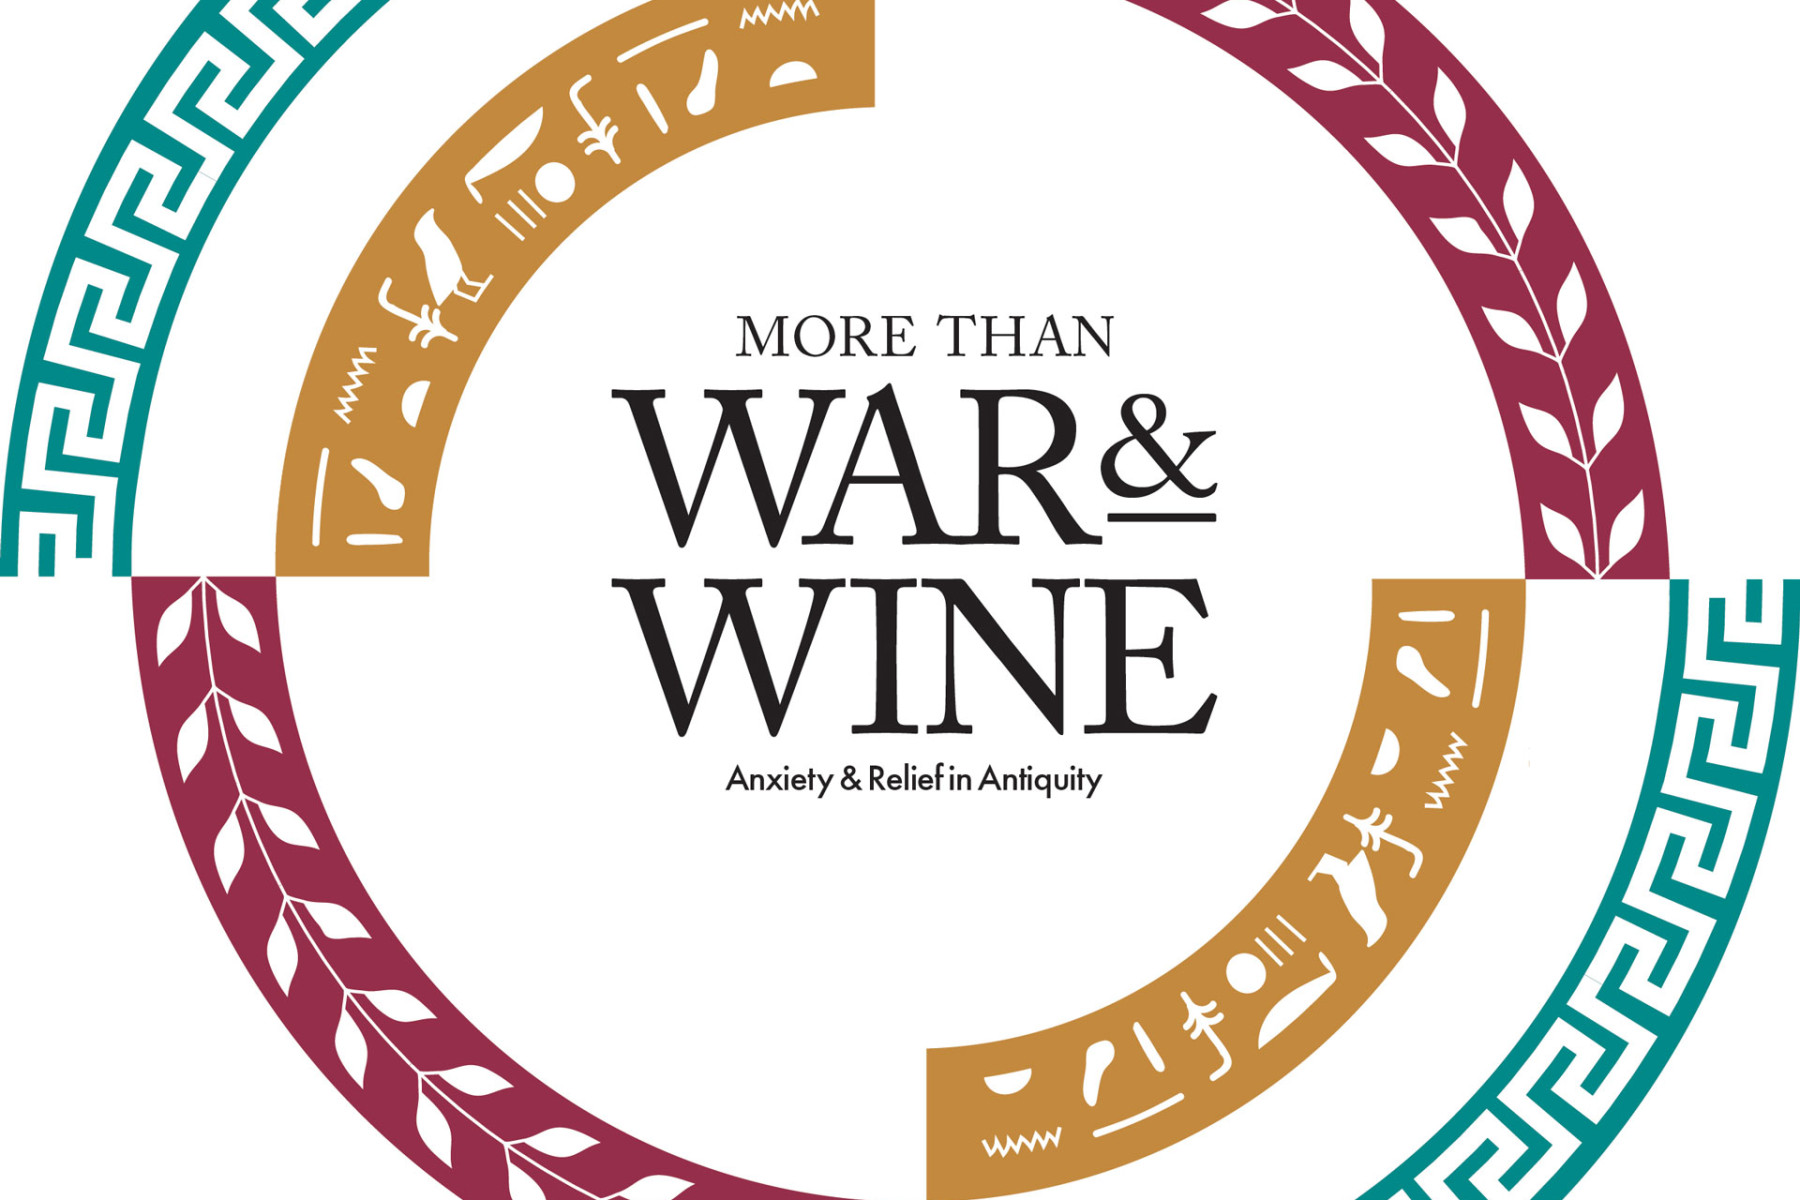 More Than War & Wine